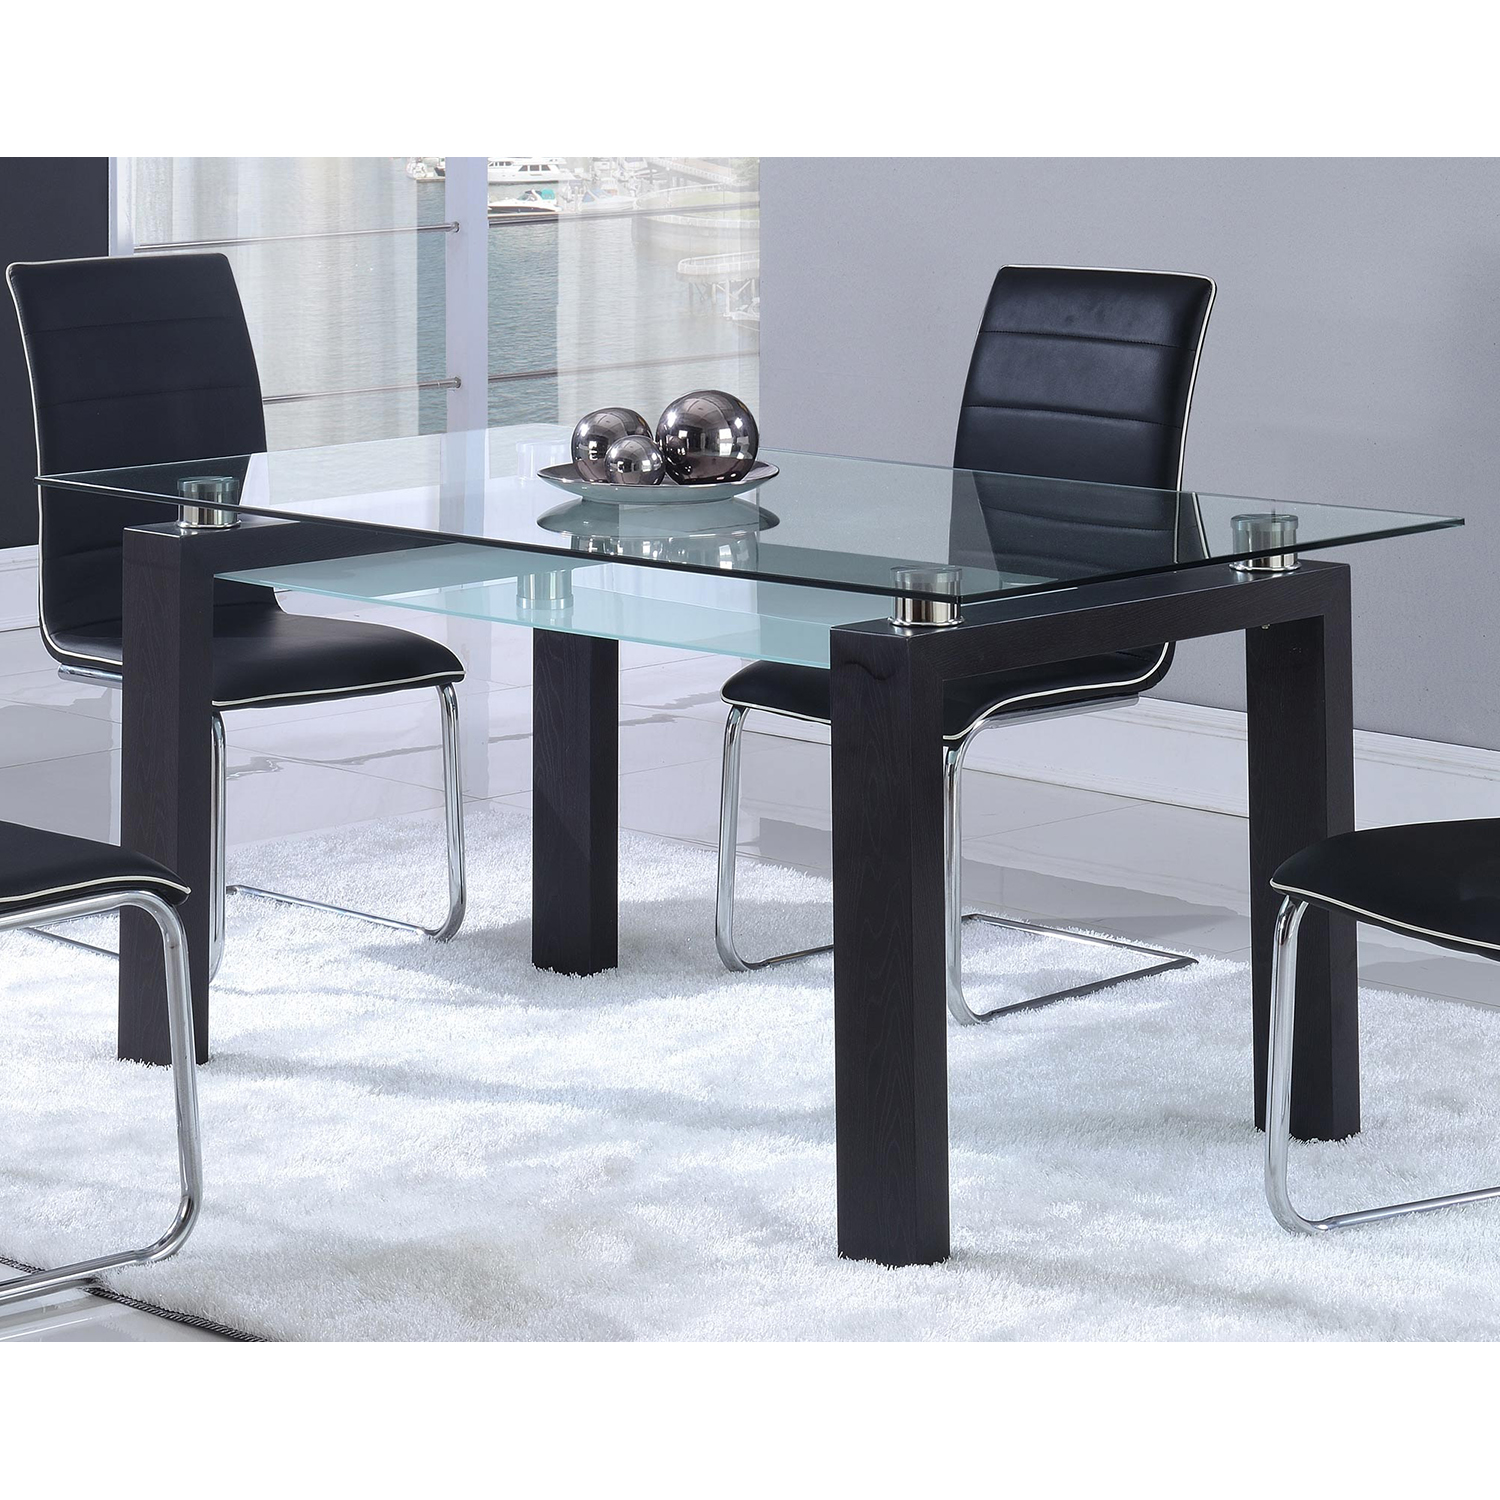 Katelyn Dining Table - Black